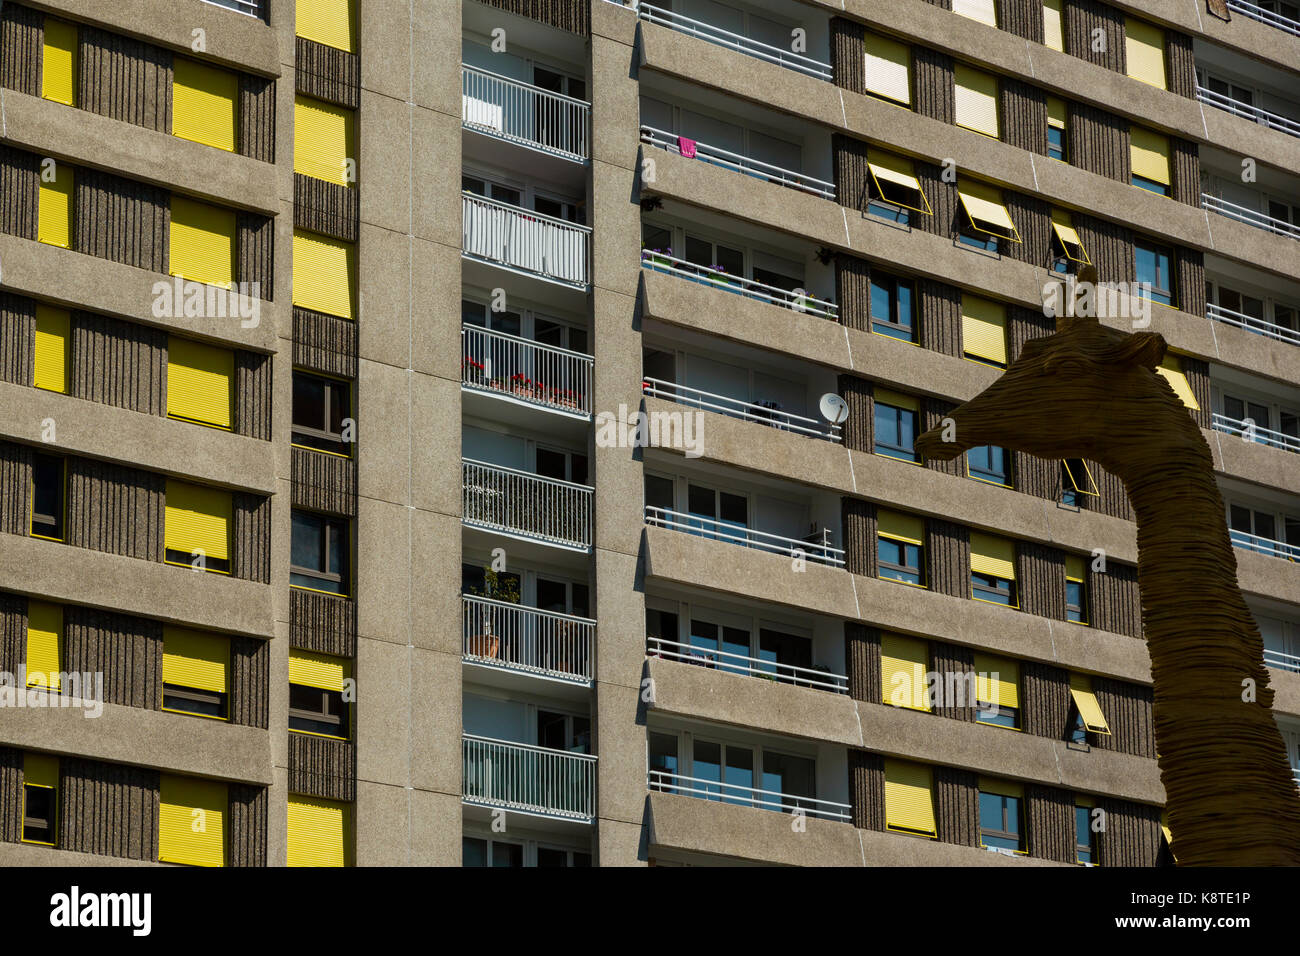 Modern Public Buildings Located At Boulogne Billancourt.   Stock Image